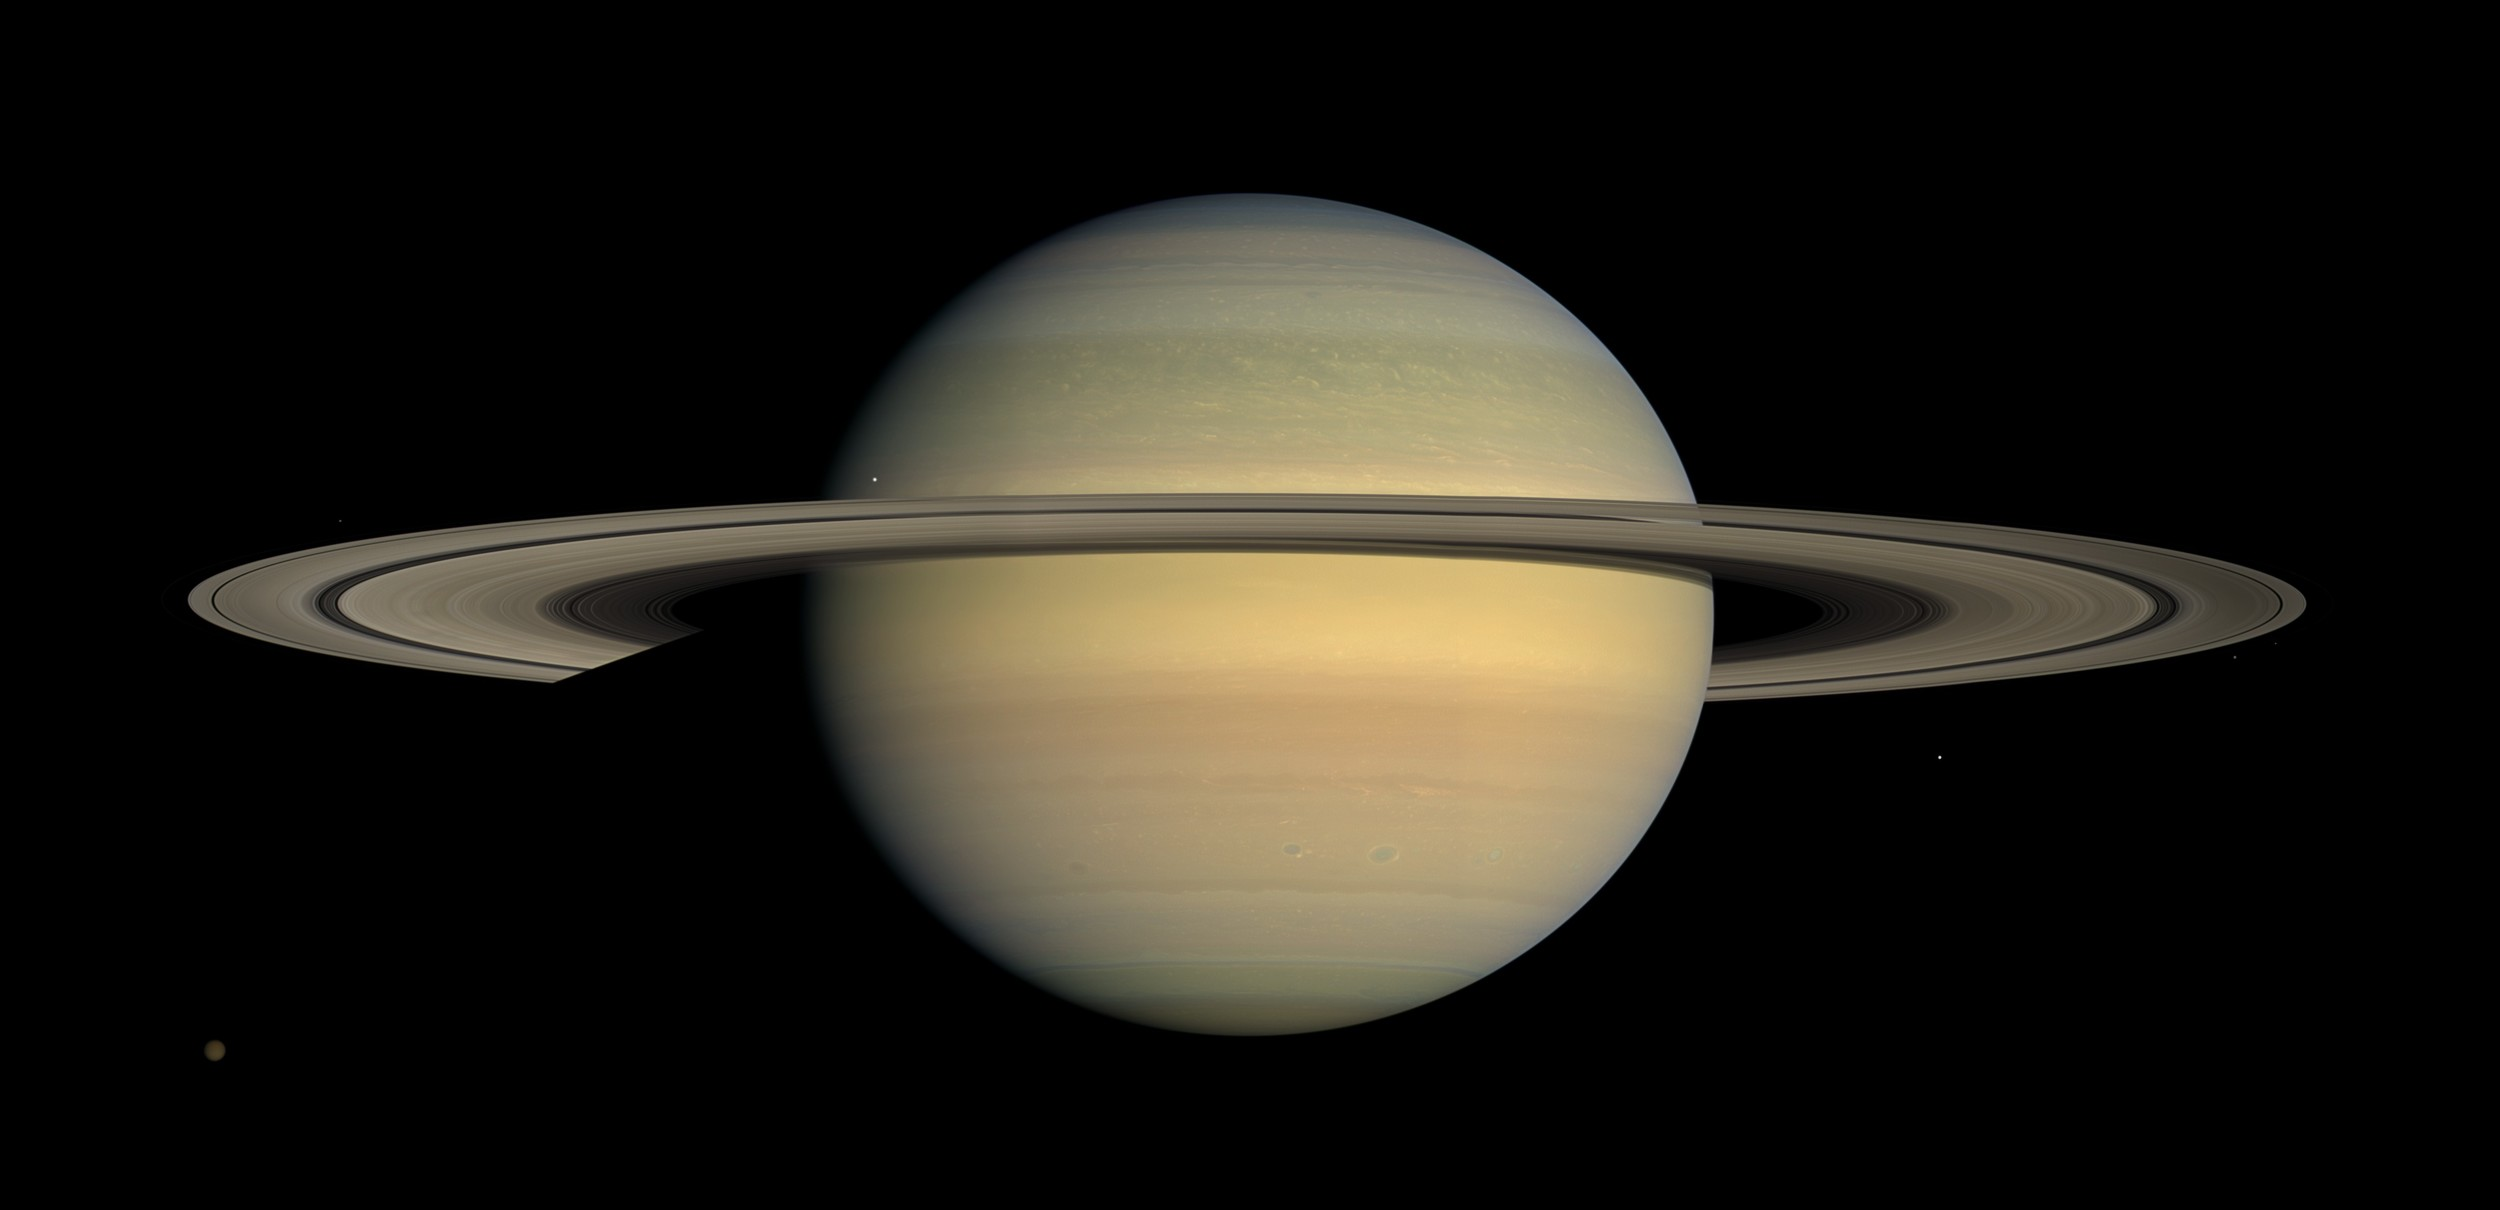 When view through a telescope on Earth, Saturn appears as it was over an hour ago.